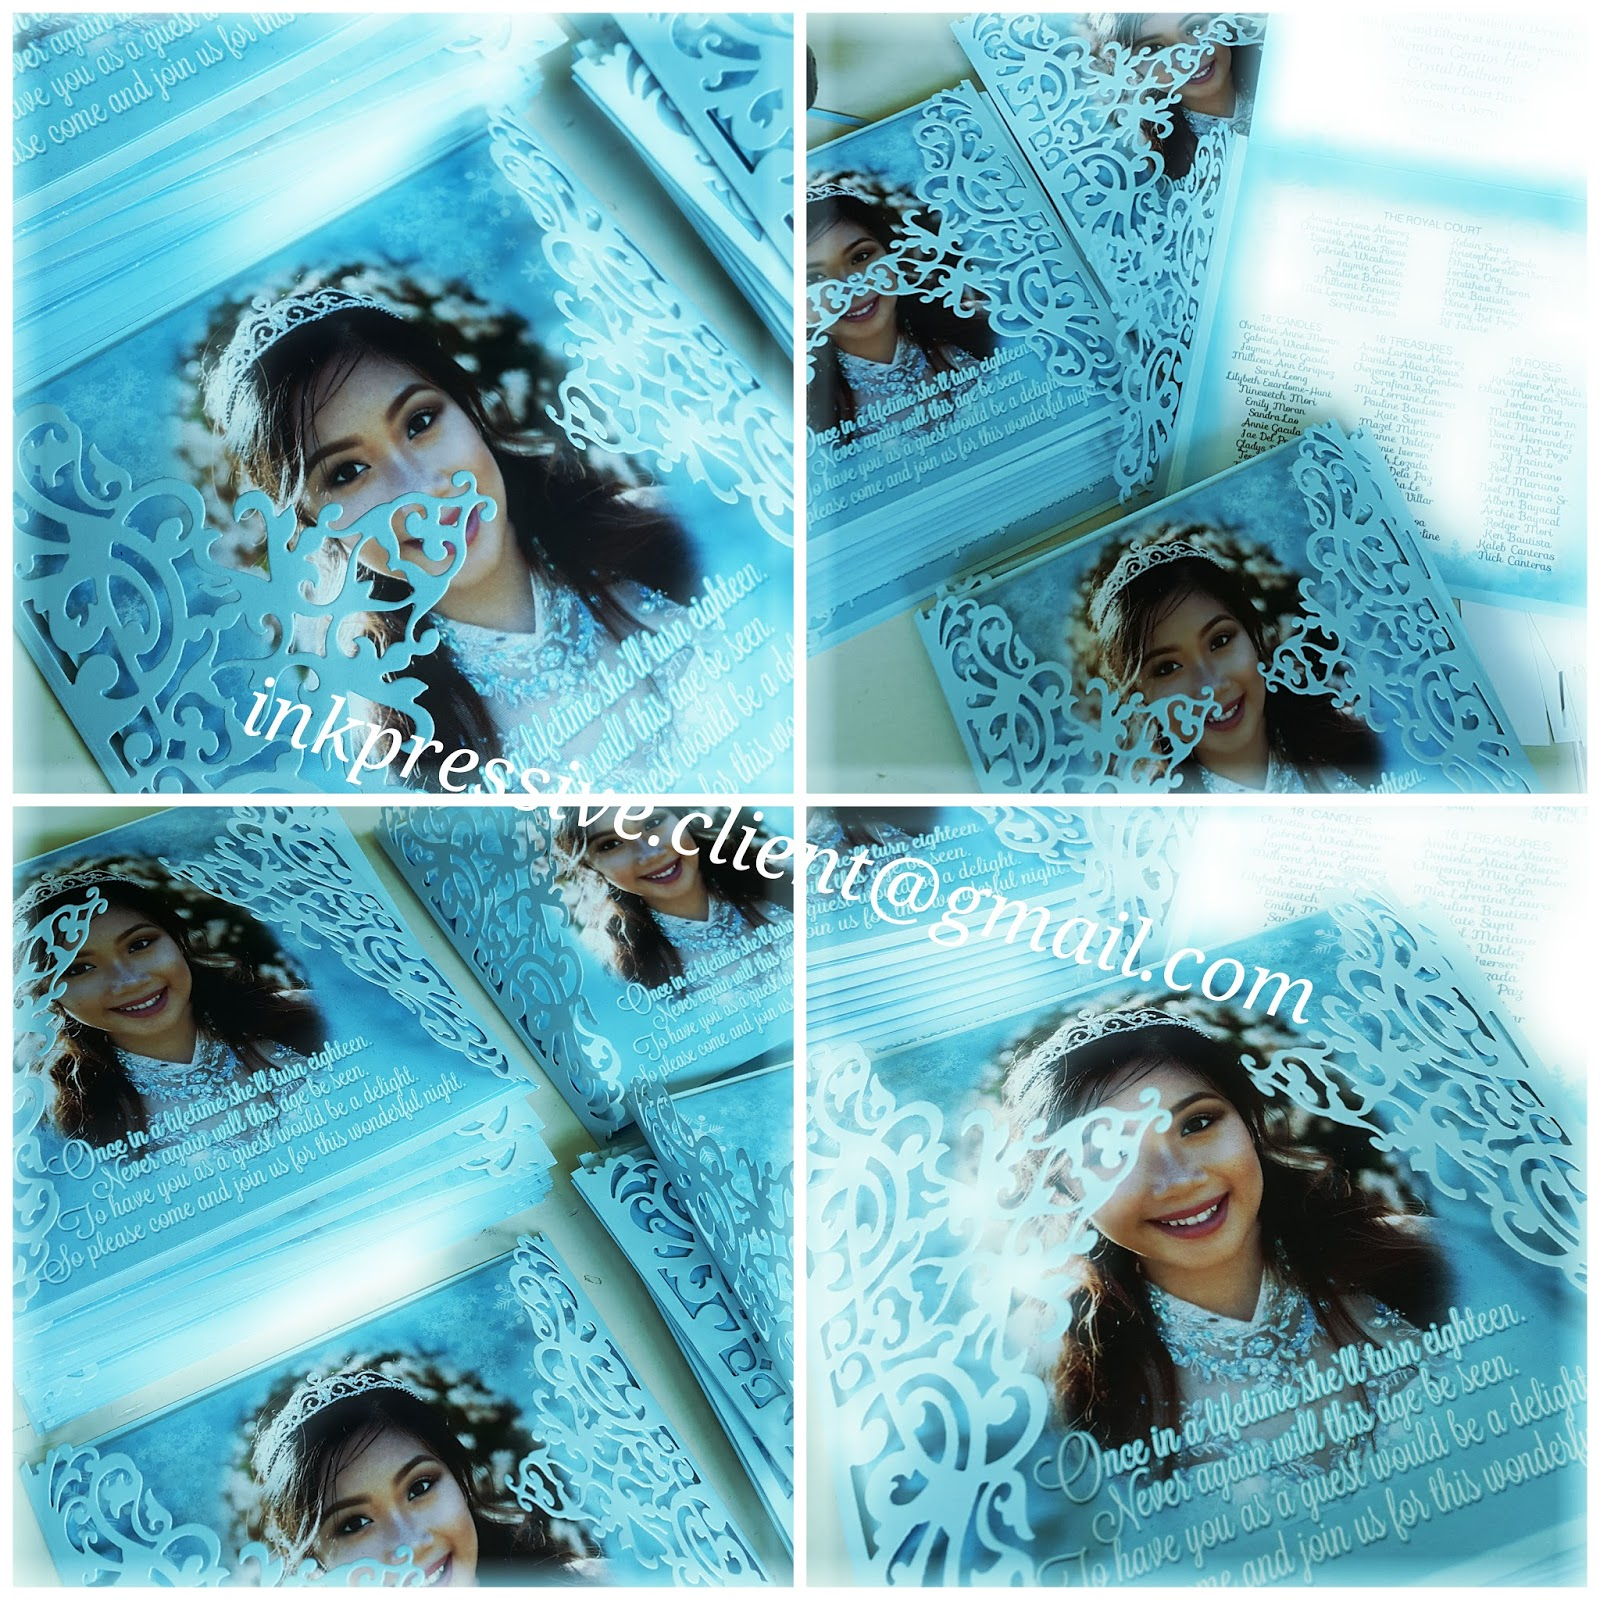 Intricate Cut Winter Themed Invitation For Debut Debut Invitations